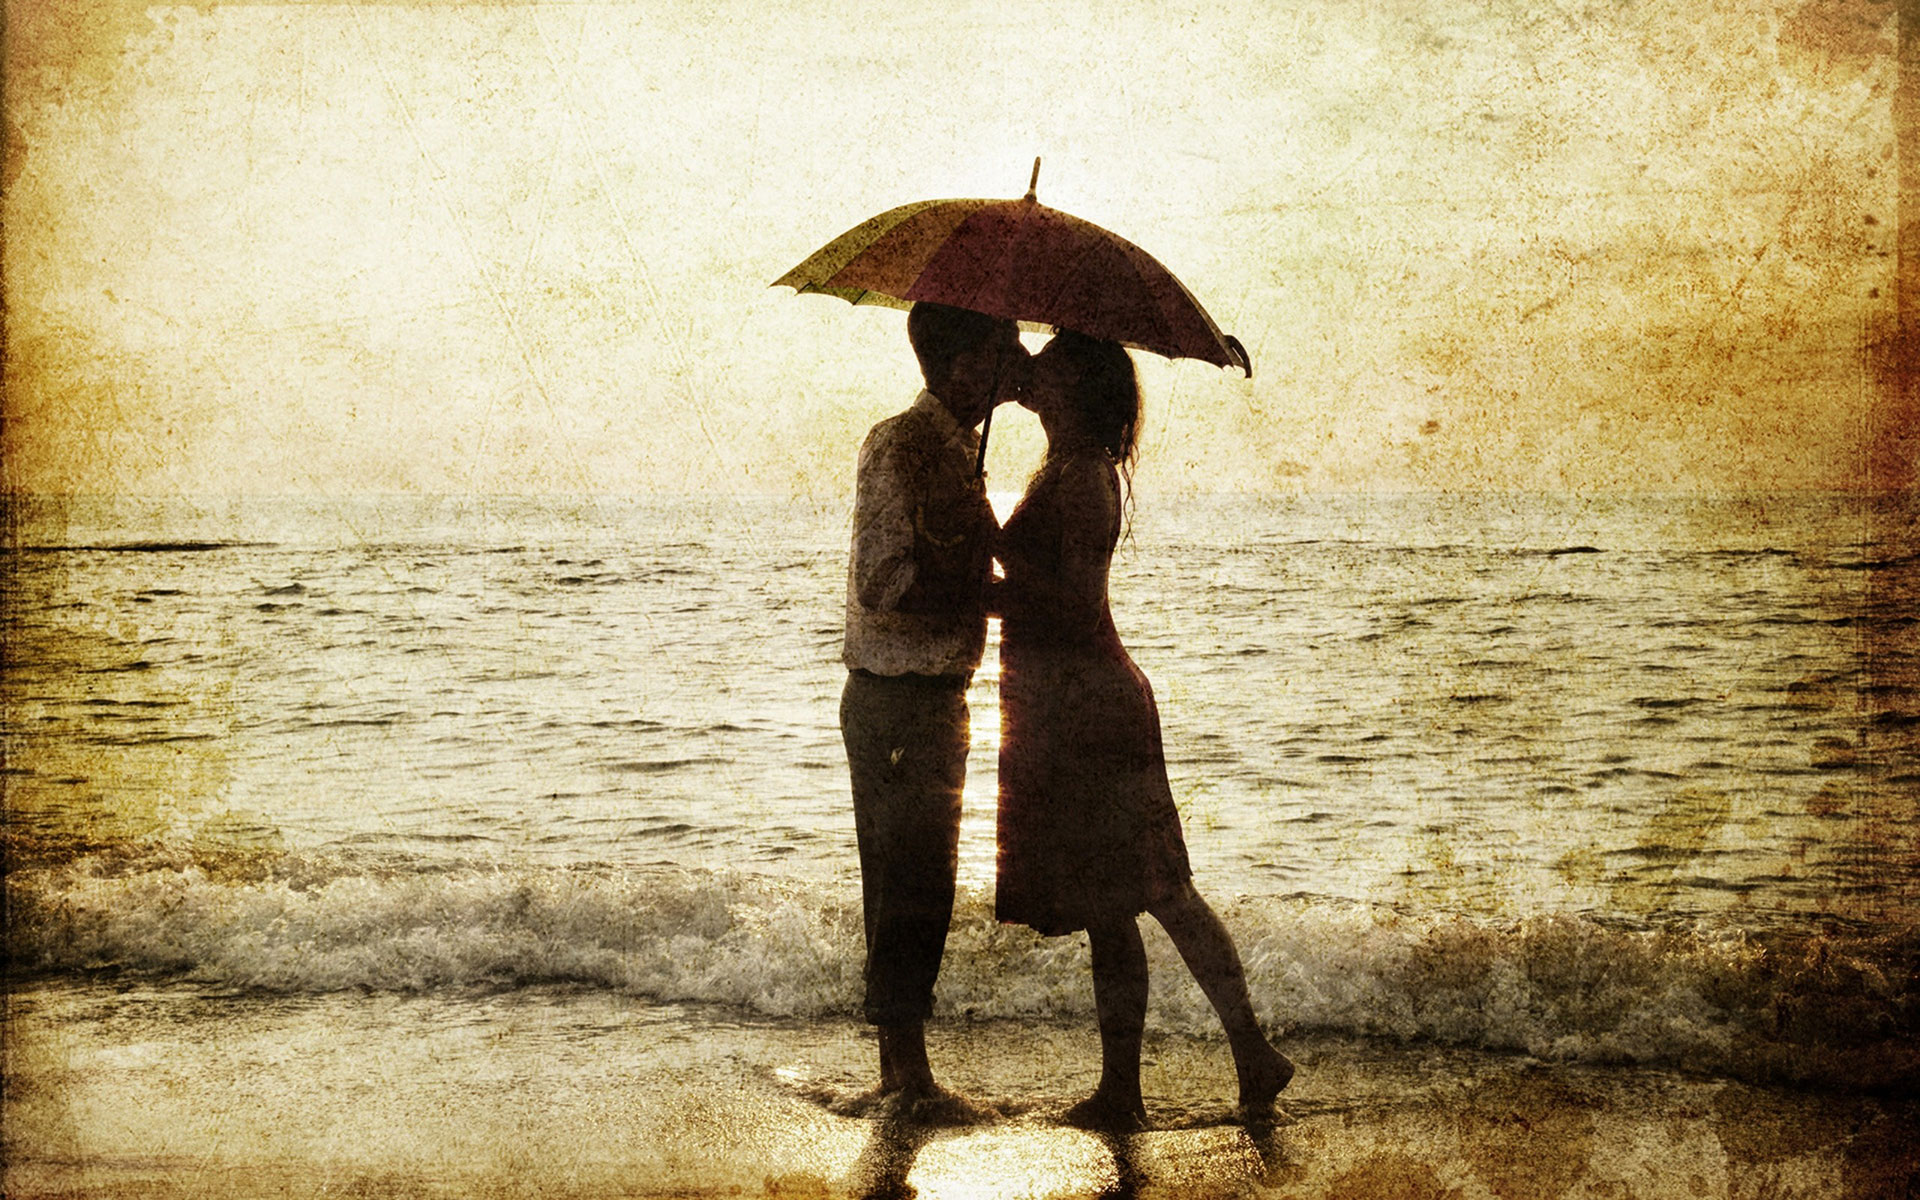 romantic love wallpapers android apps on google play 1920a—1200